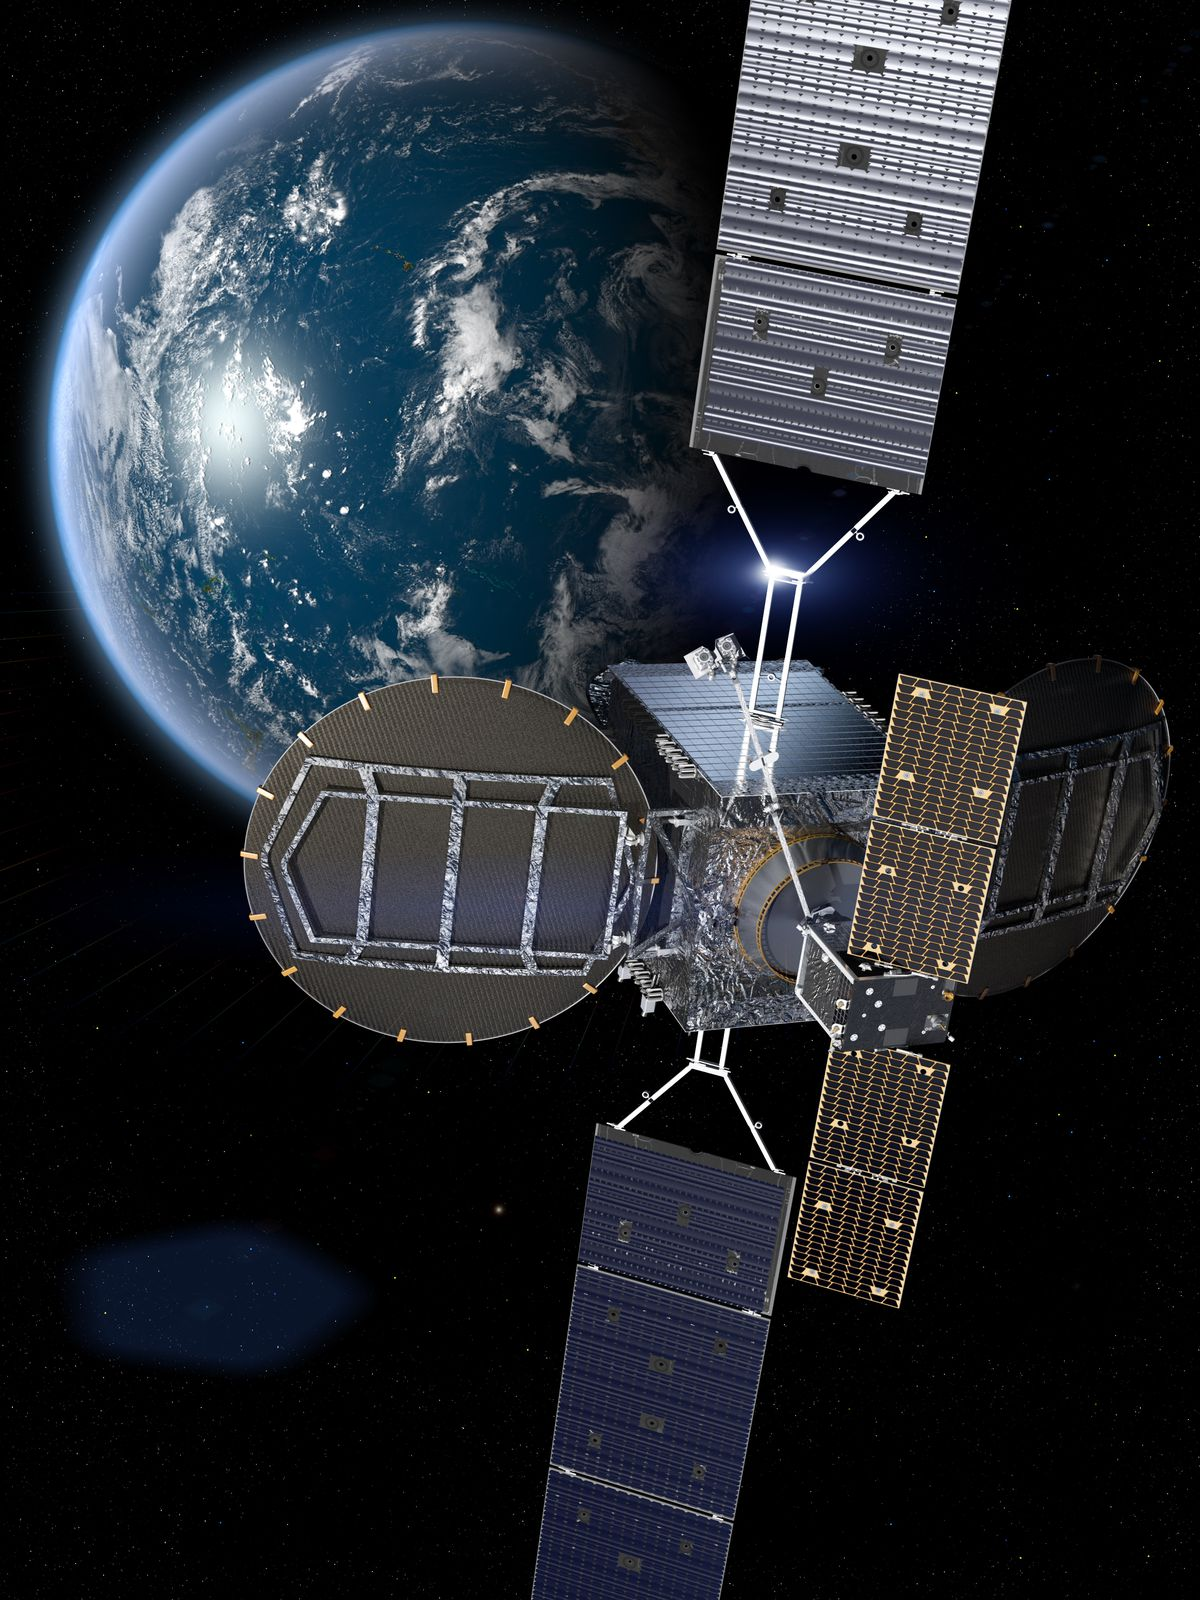 A robotic spacecraft just latched onto an active satellite in orbit